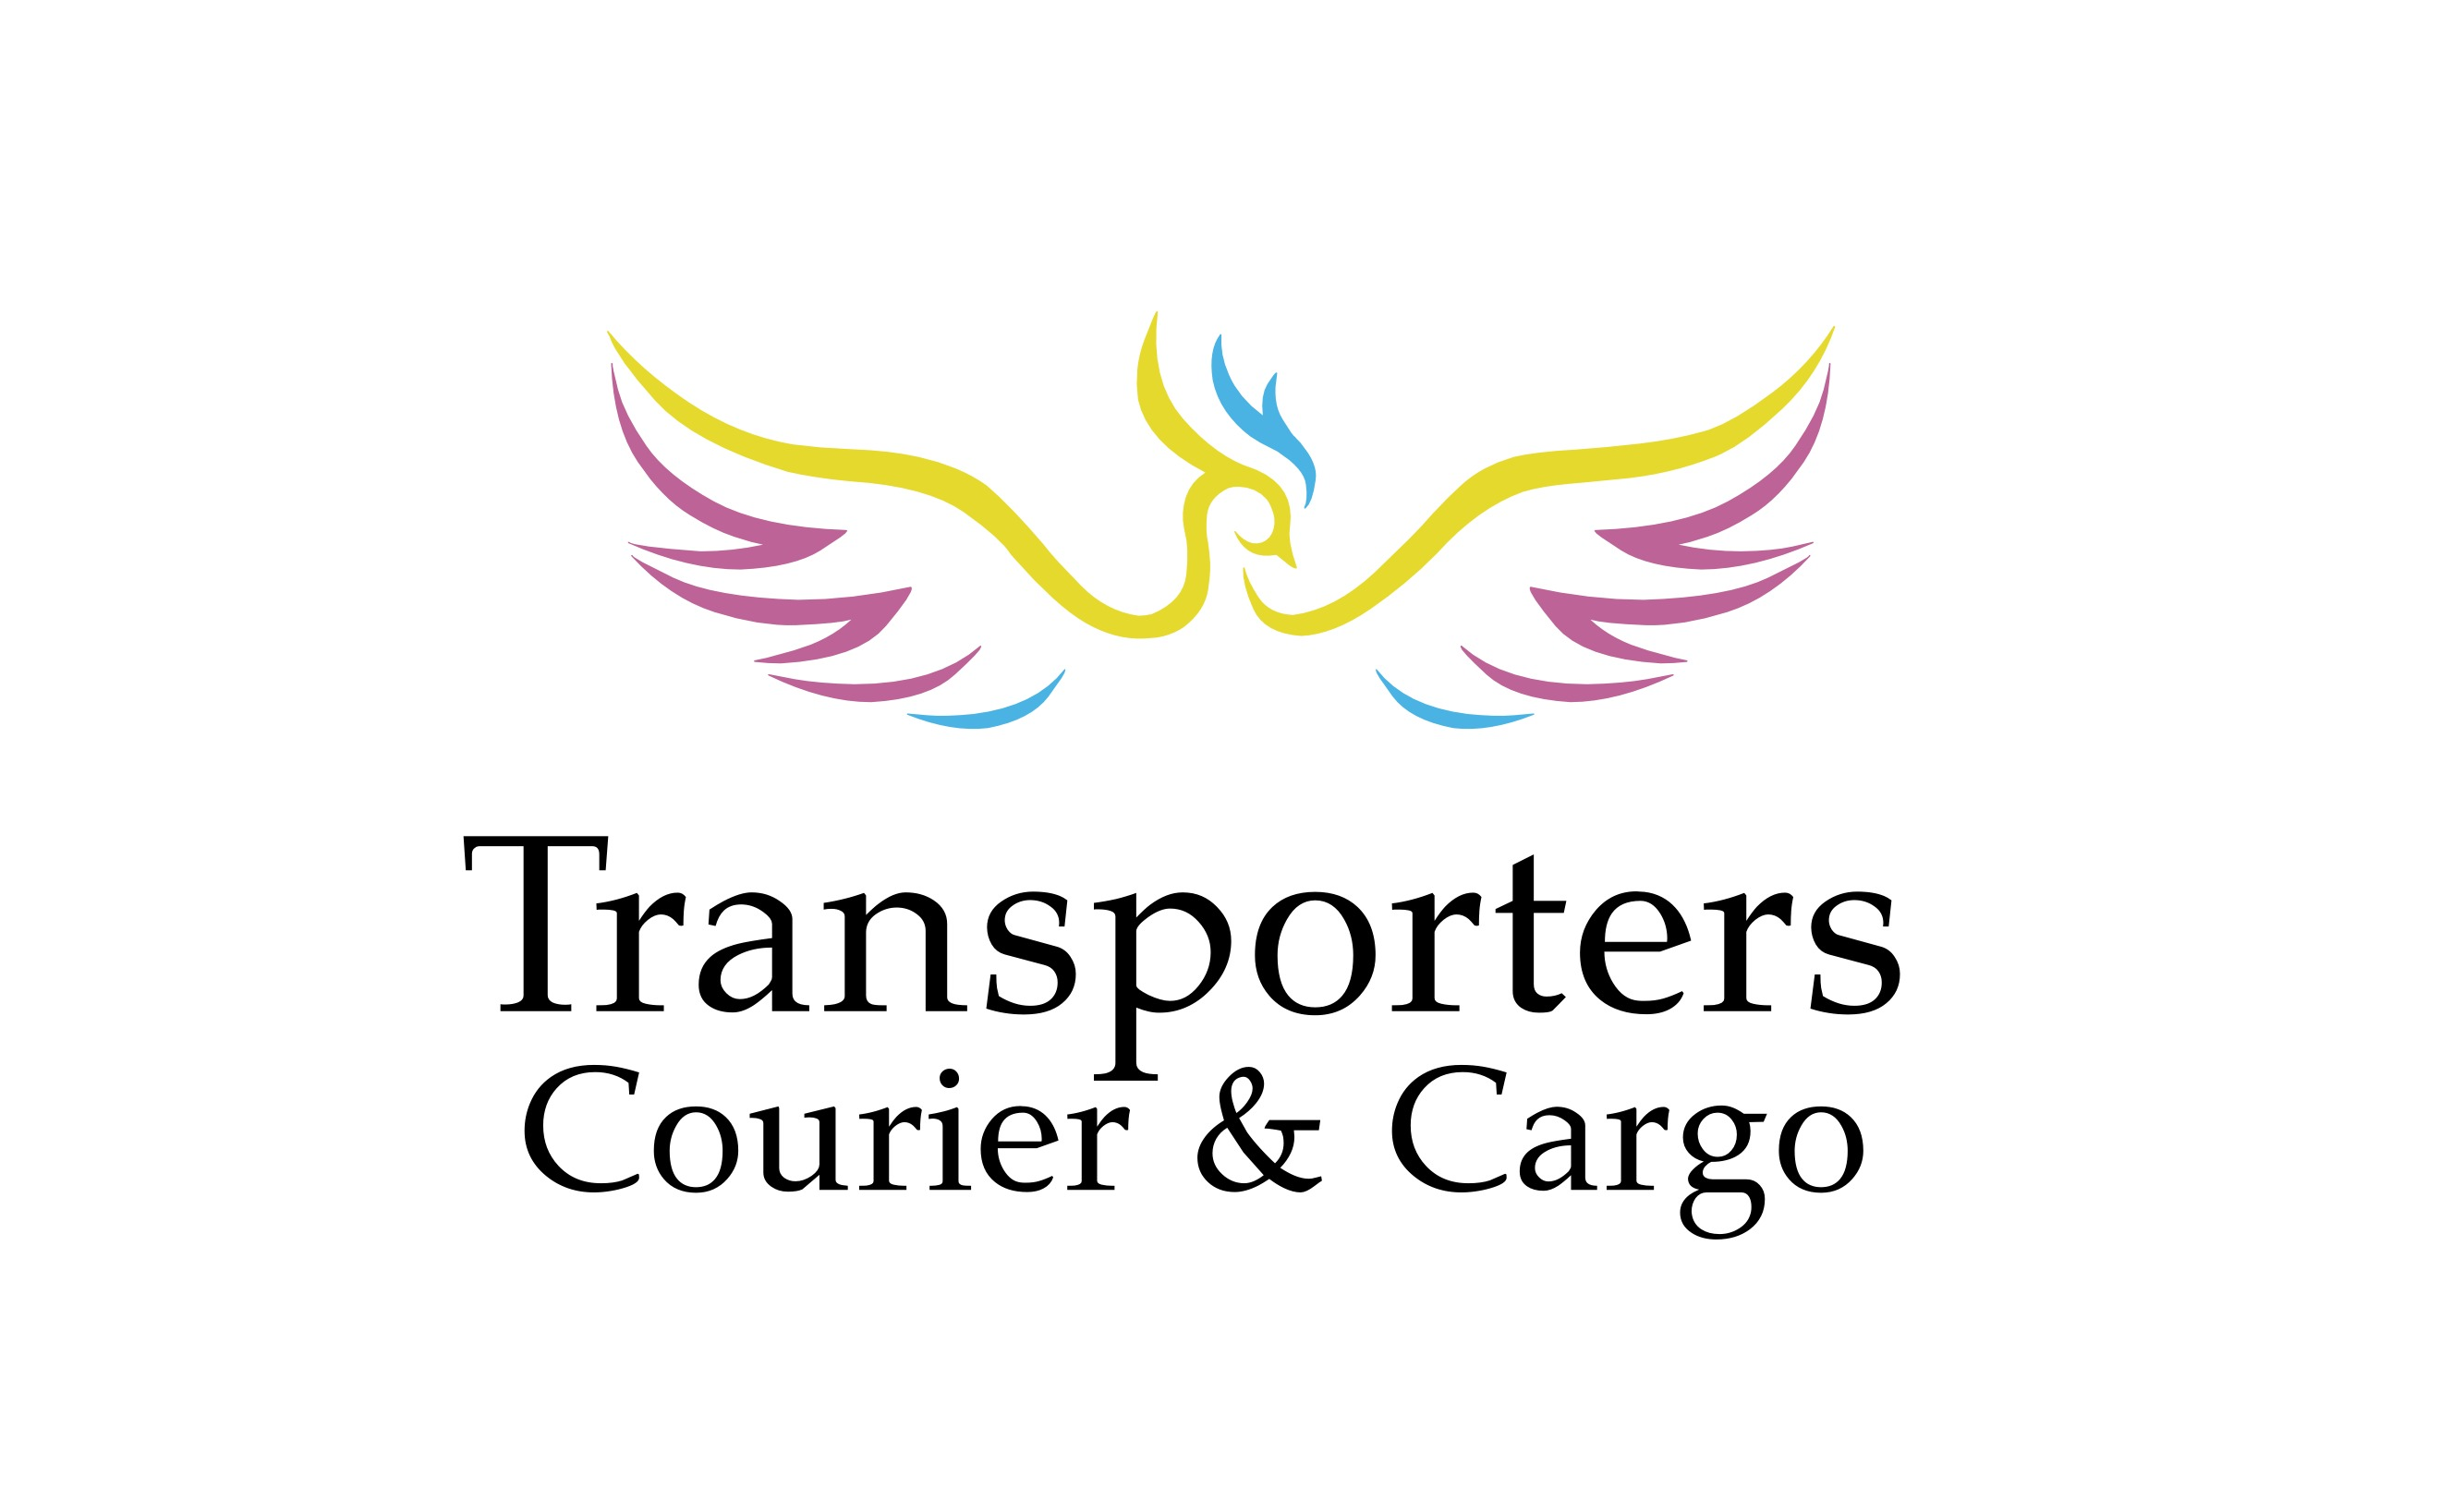 Transporters Courier and Cargo